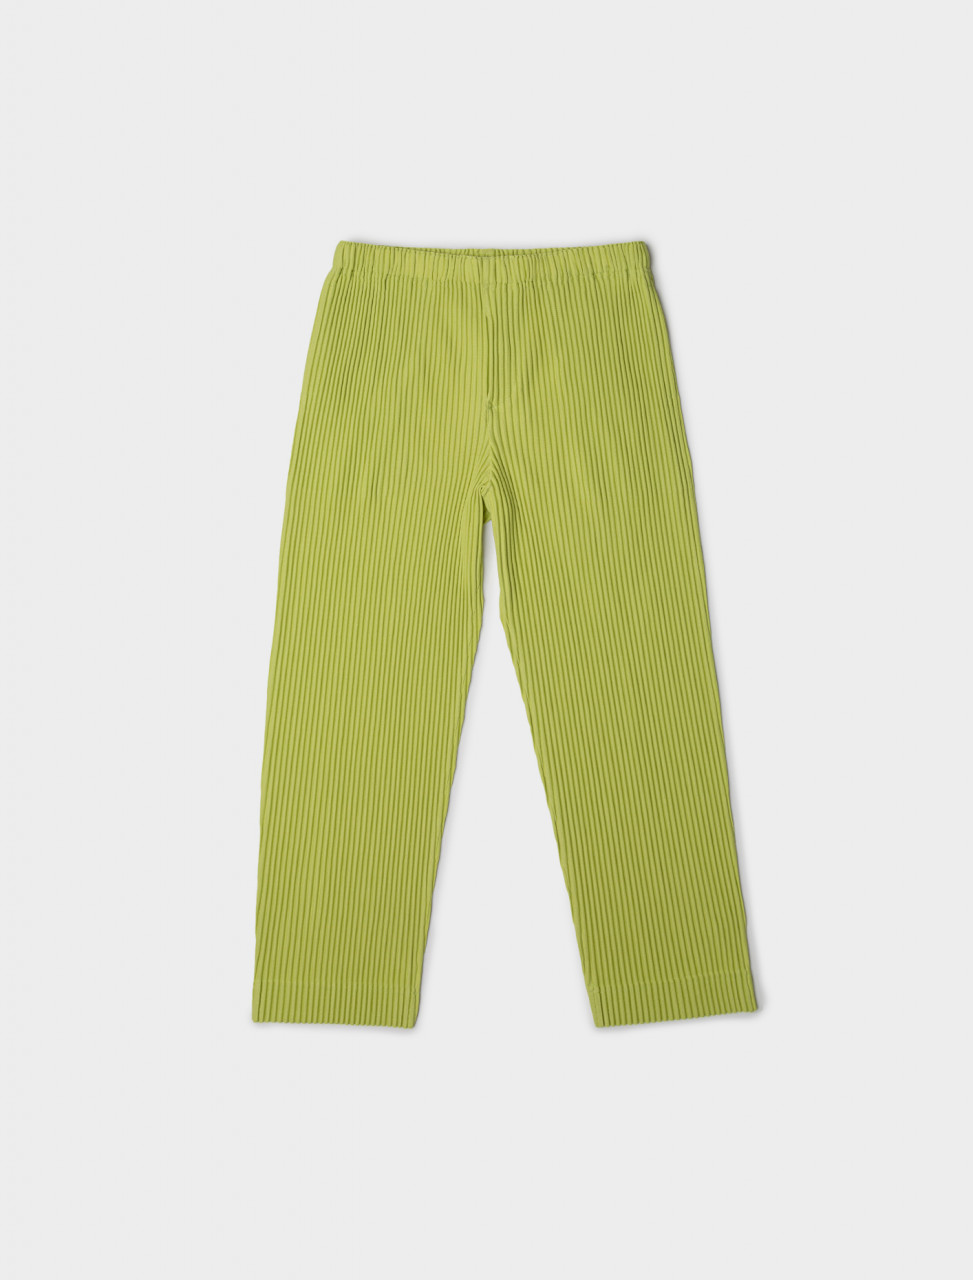 Front view of HOMME PLISSÉ Issey Miyake Pleated Trouser in Chartreuse